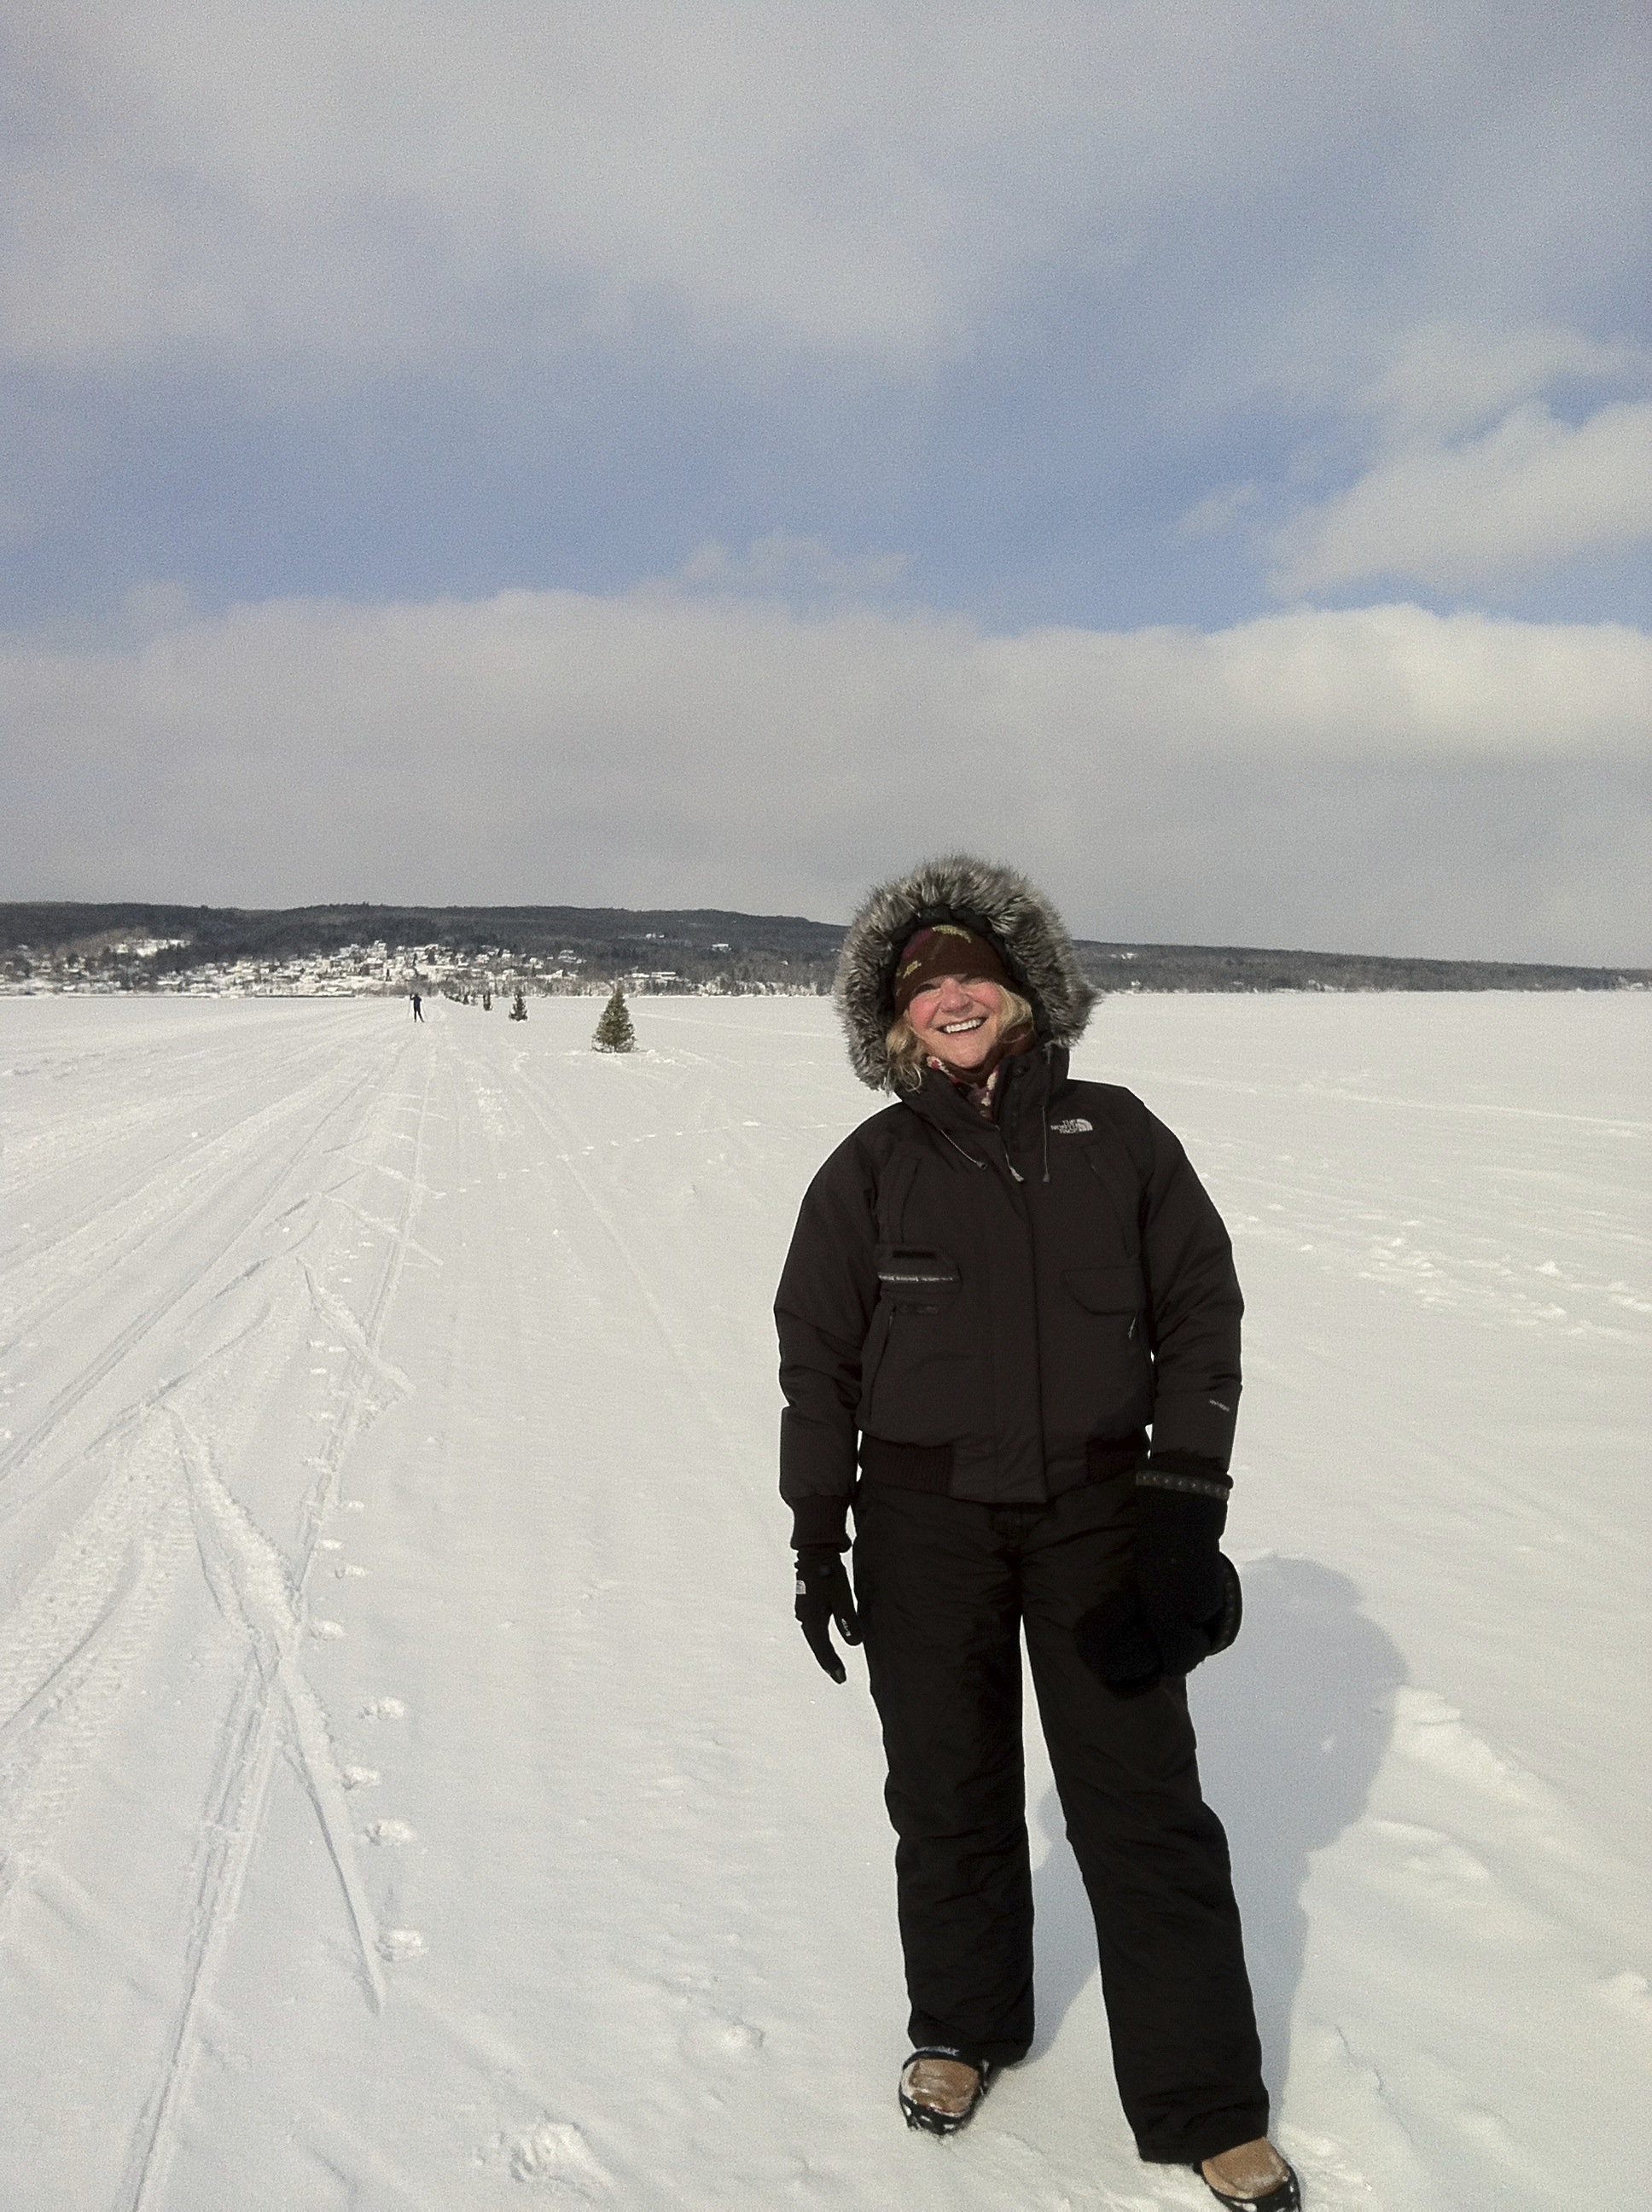 On the Ice Road between Madeline Island and Bayfield.